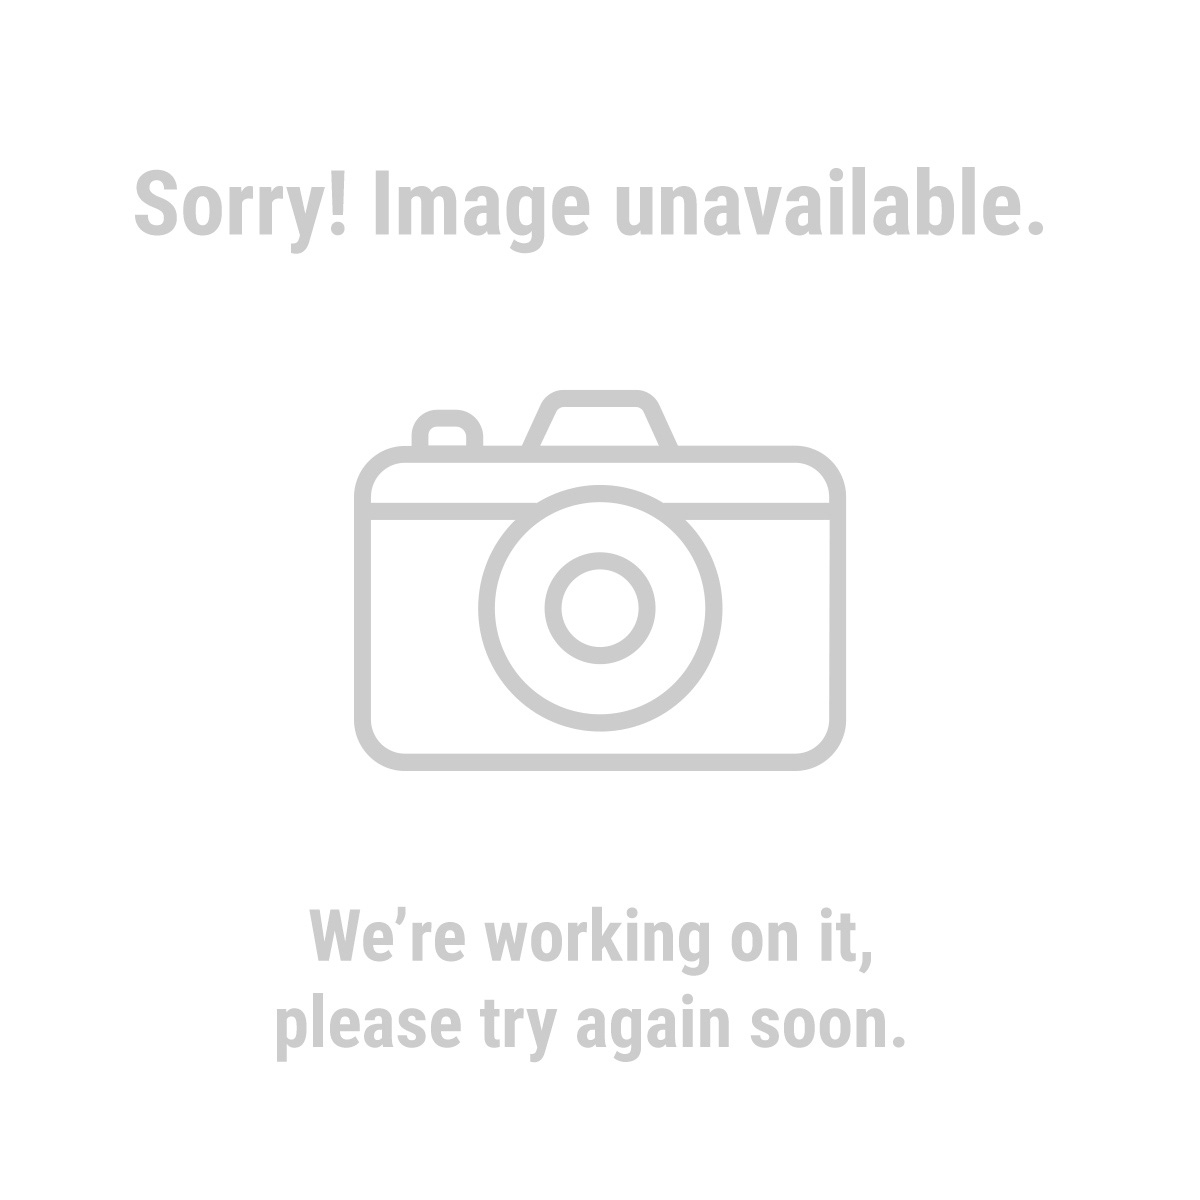 Haul-Master® 95353 200 Lb. Capacity Mover's Dolly